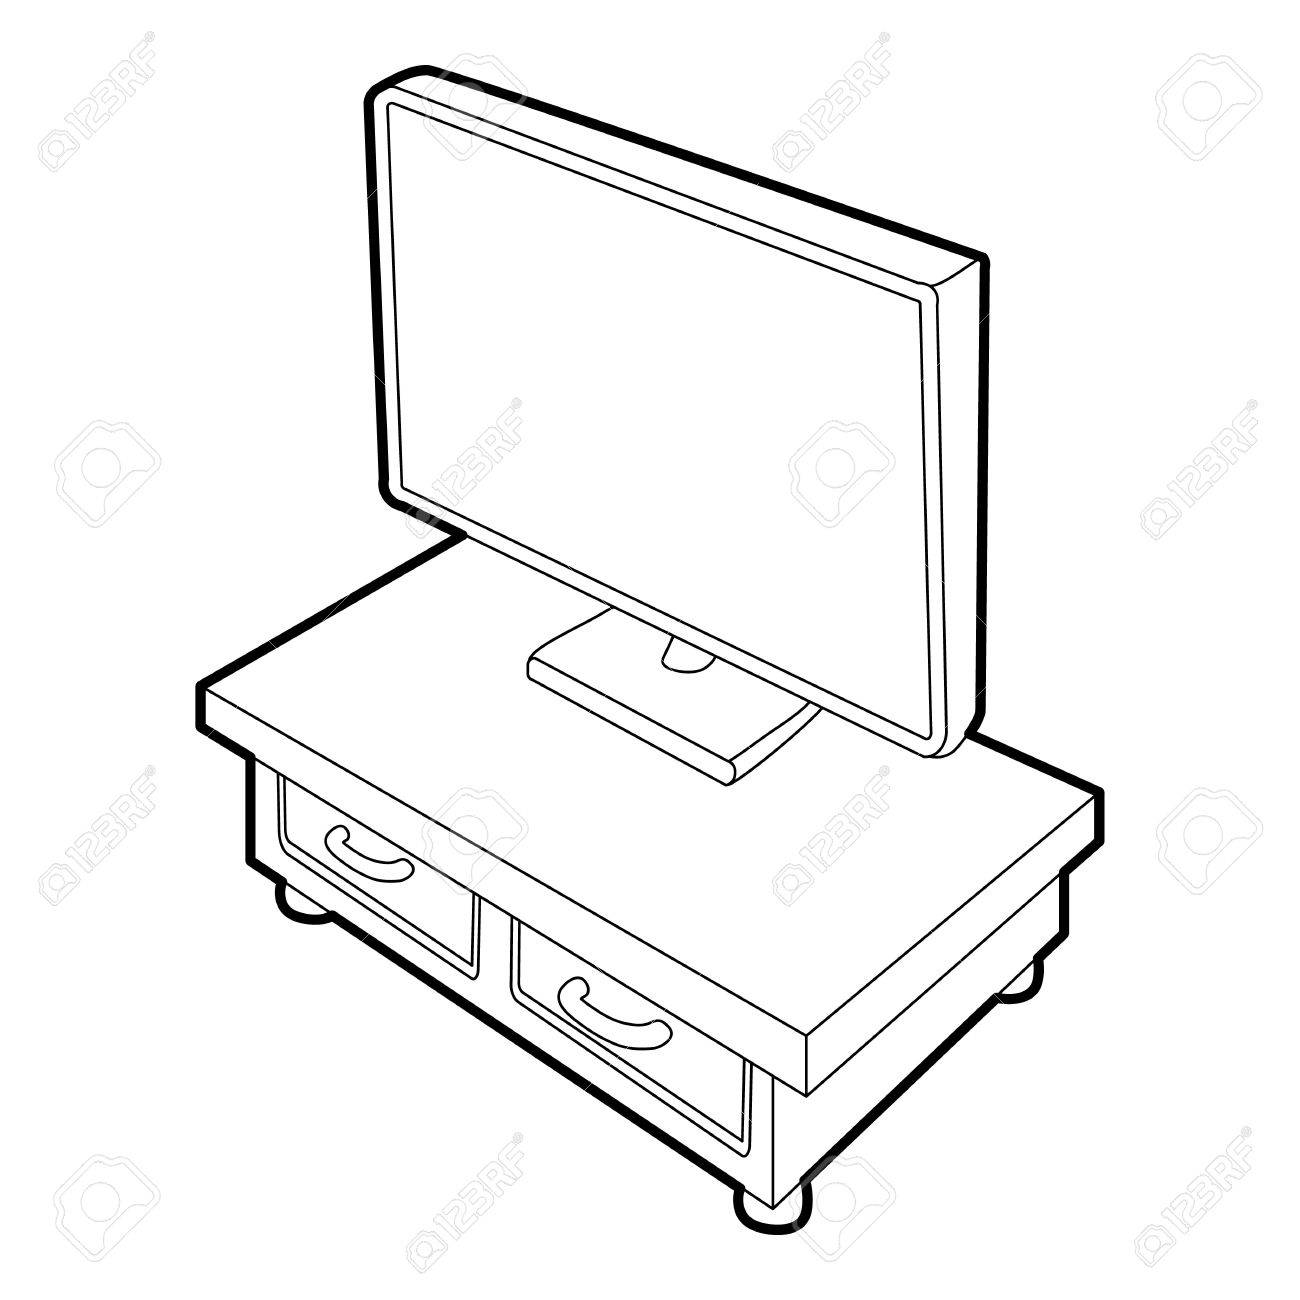 1300x1300 Wooden Tv Cabinet With Tv Icon. Isometric 3d Illustration